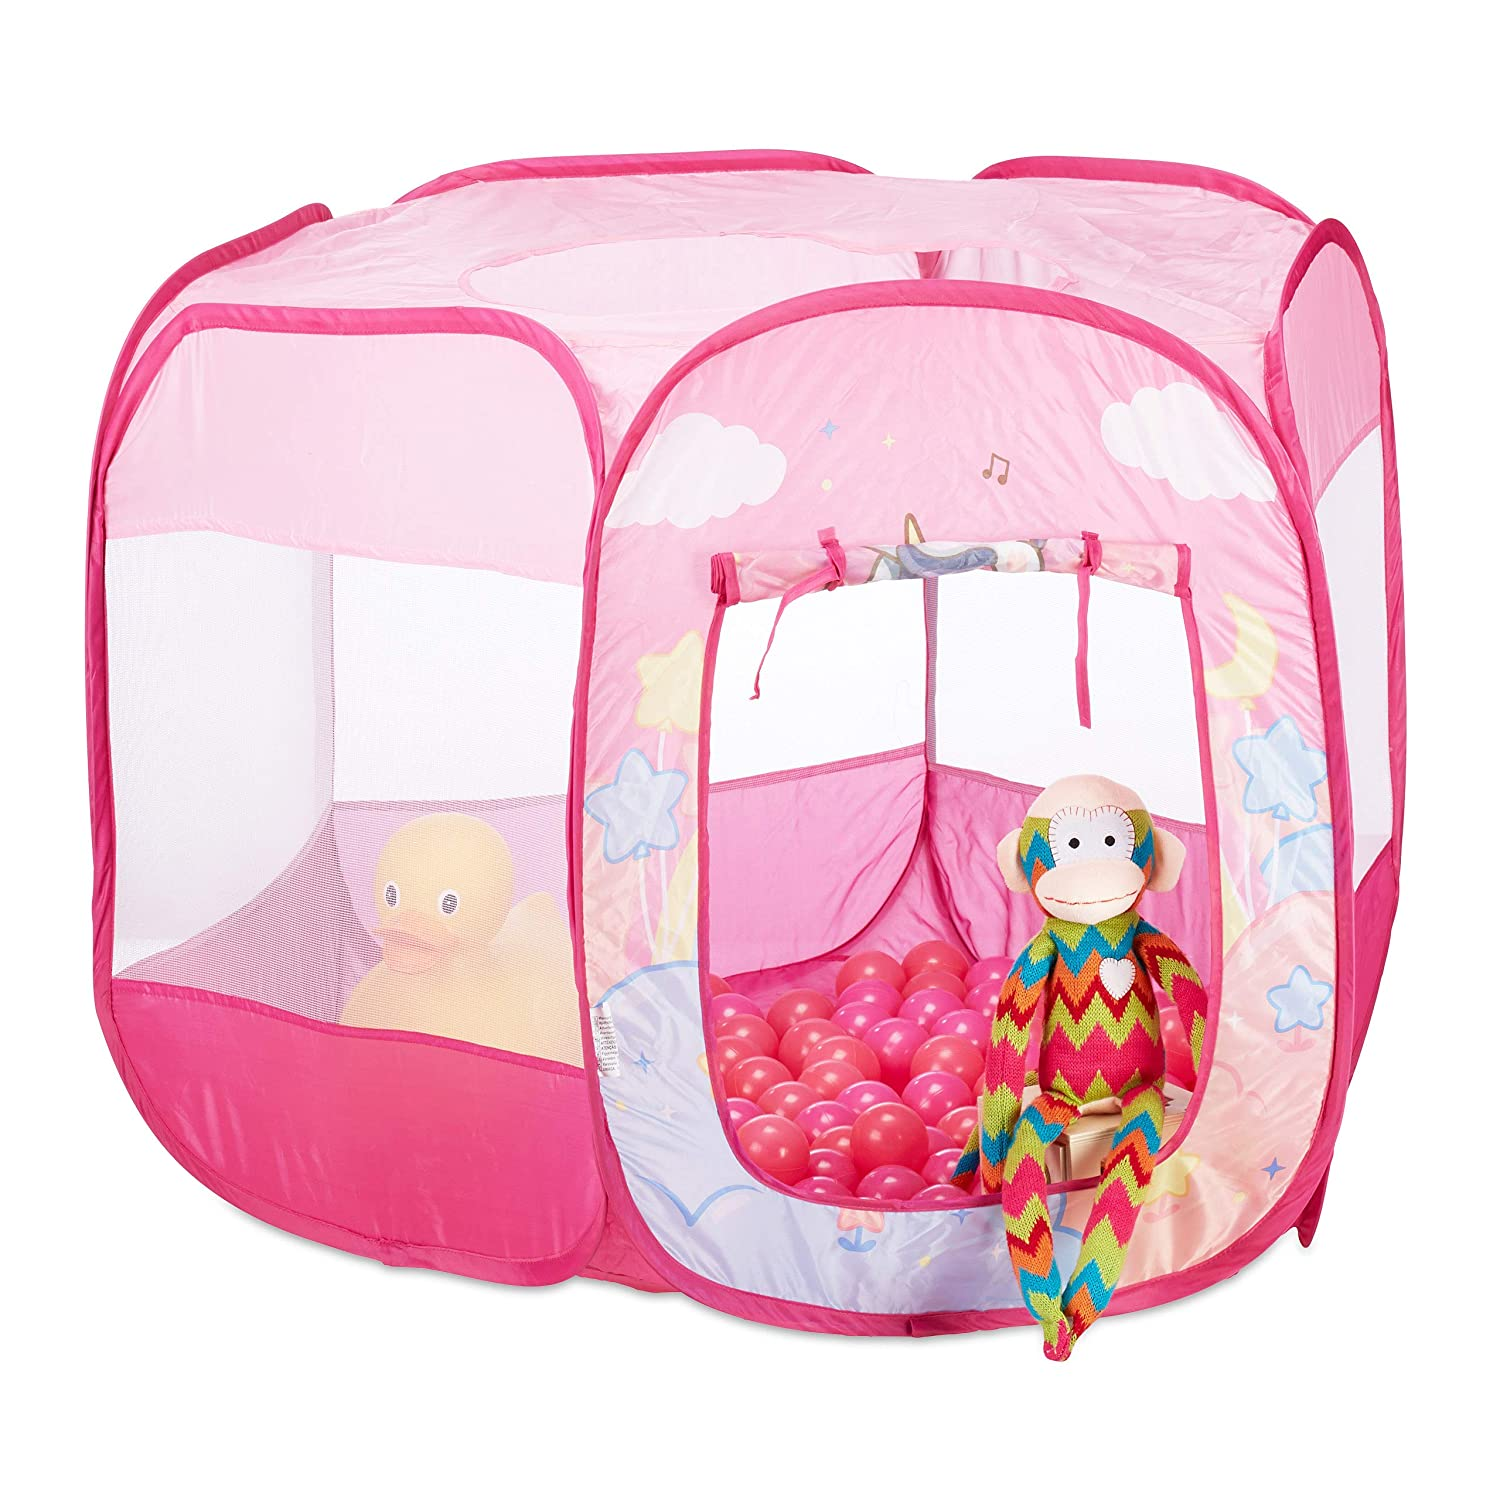 Relaxdays Unicorn Ball Pit, 100 Balls, Pink Pop Up Ball Pool, In- and Outdoor, Play Tent HWD 75 x 90 x 90 cm, Pink 10024760